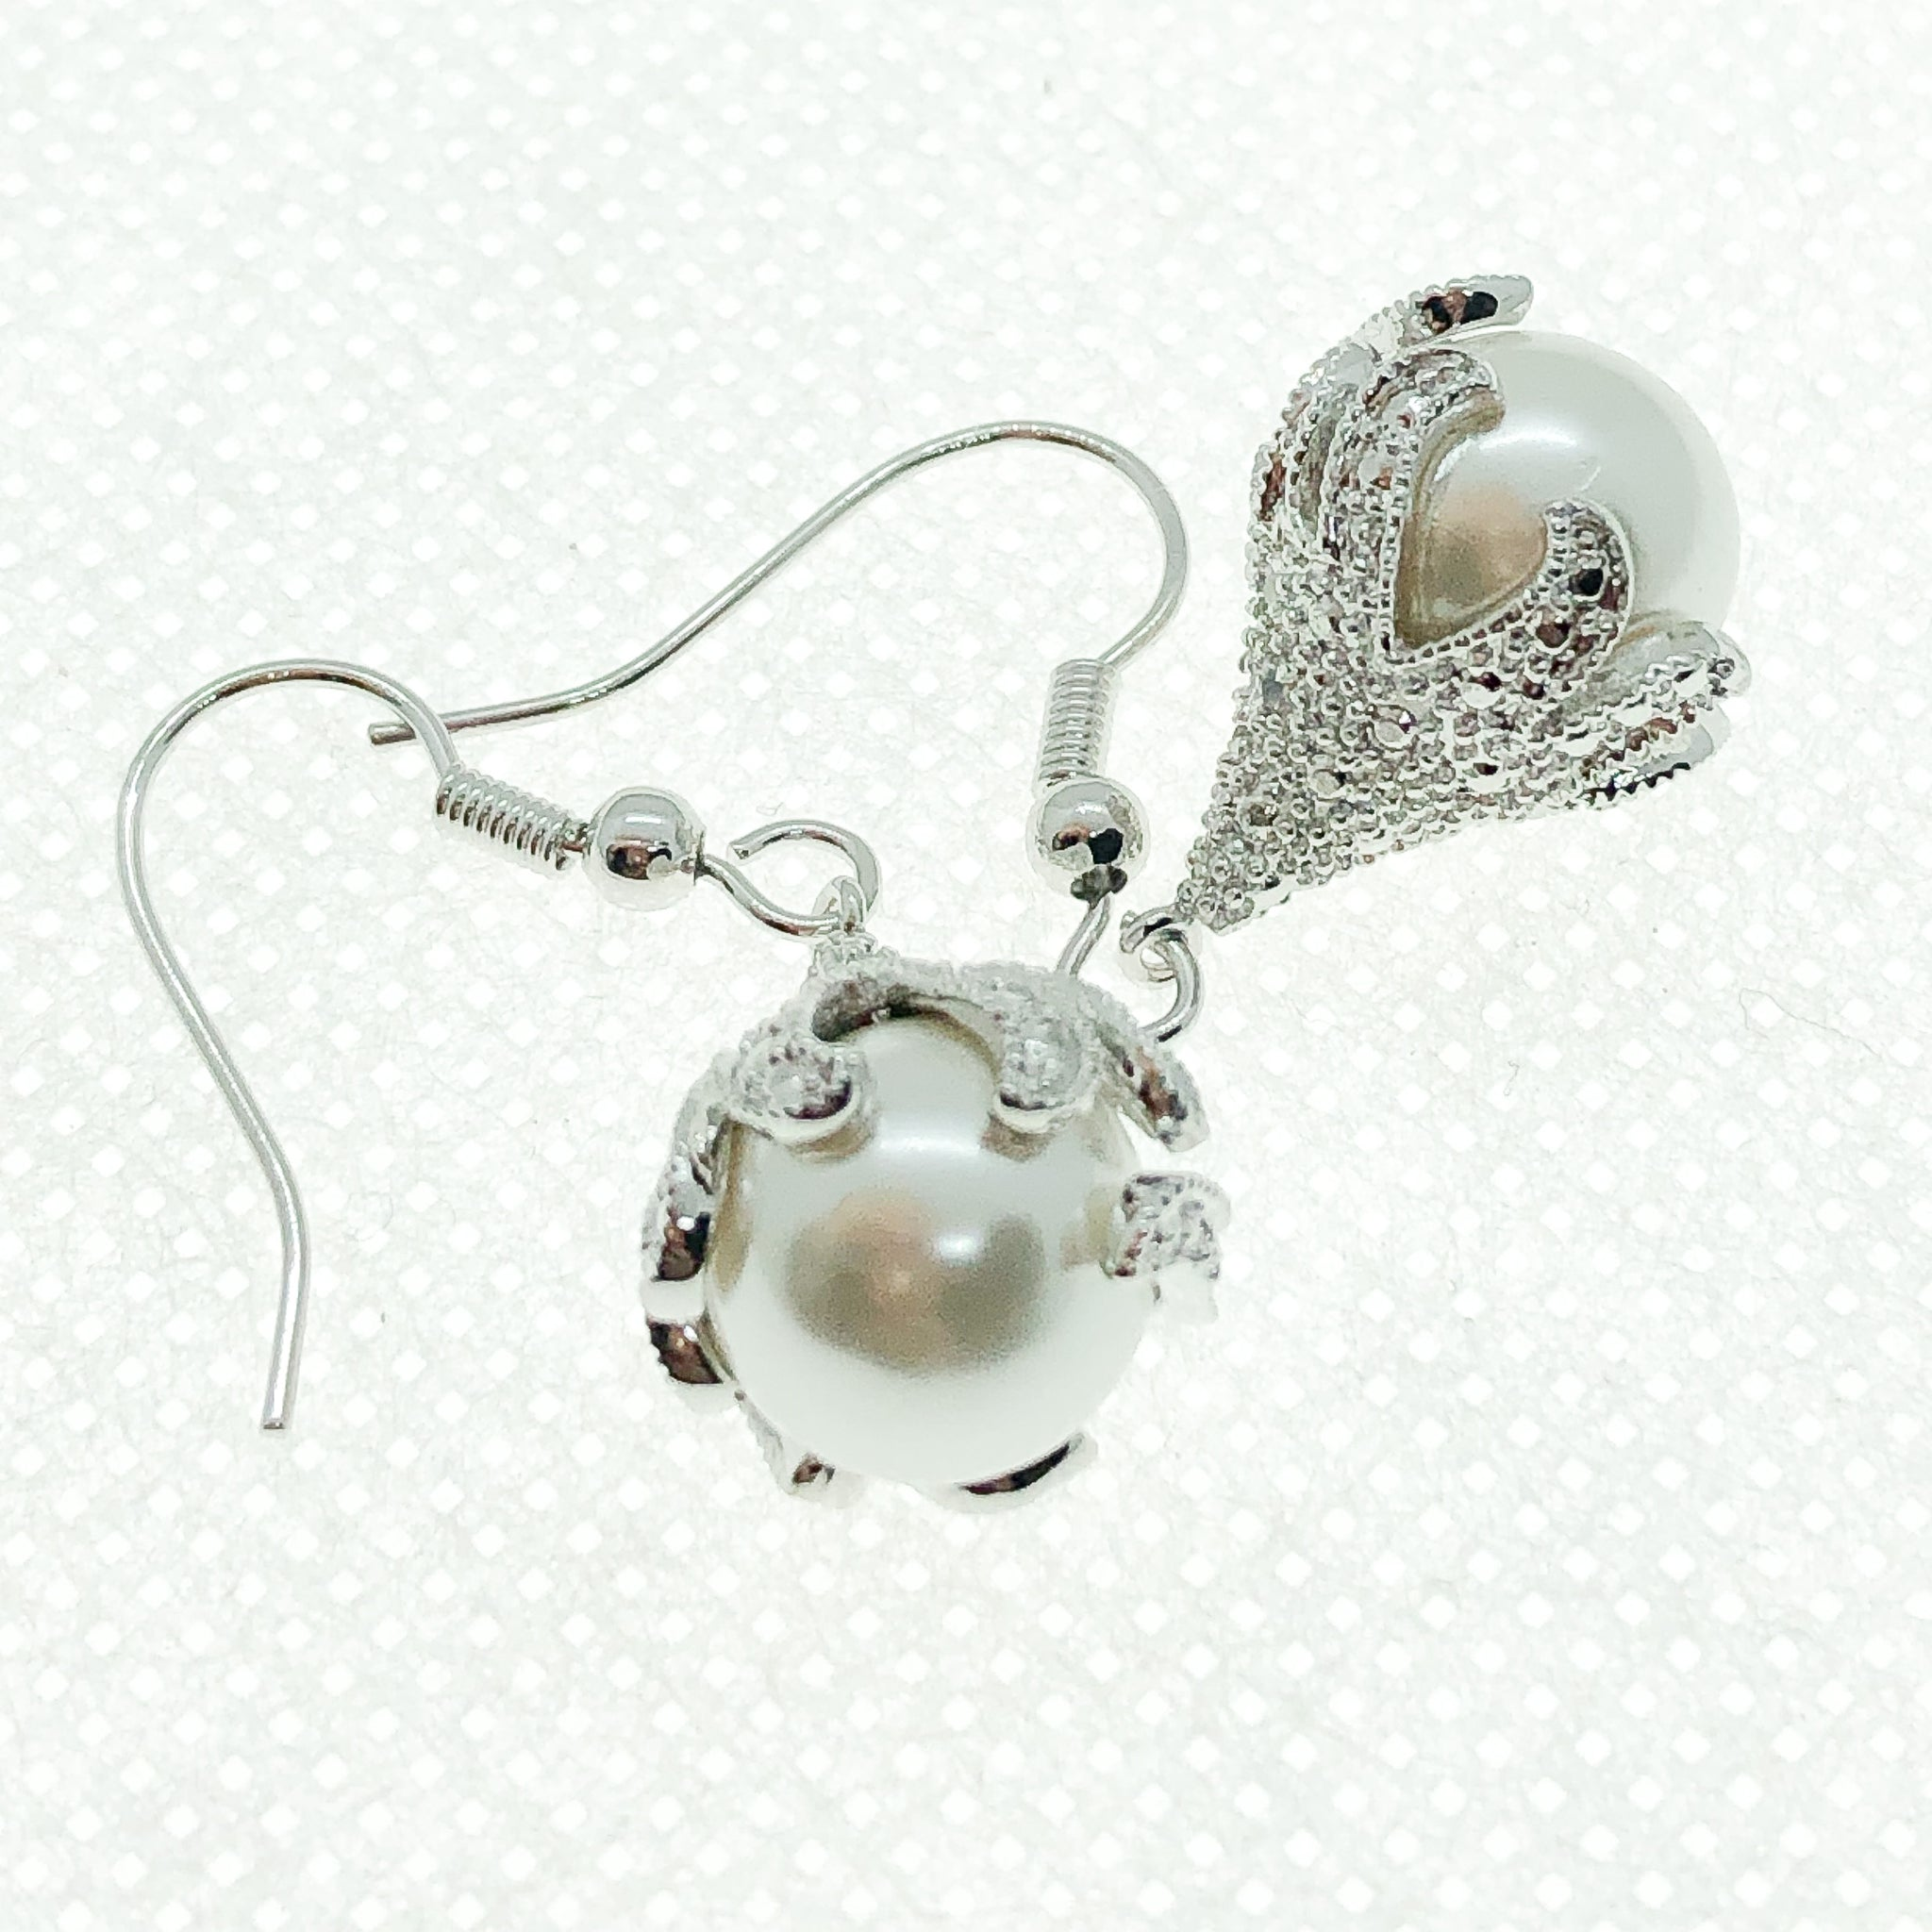 ID: E3457 WOMEN JEWELRY 18K WHITE GOLD GF PEARL WITH CLEAR ROUND STONES EARRINGS FASHION LADY DROP DANGLE GREAT FOR PARTY